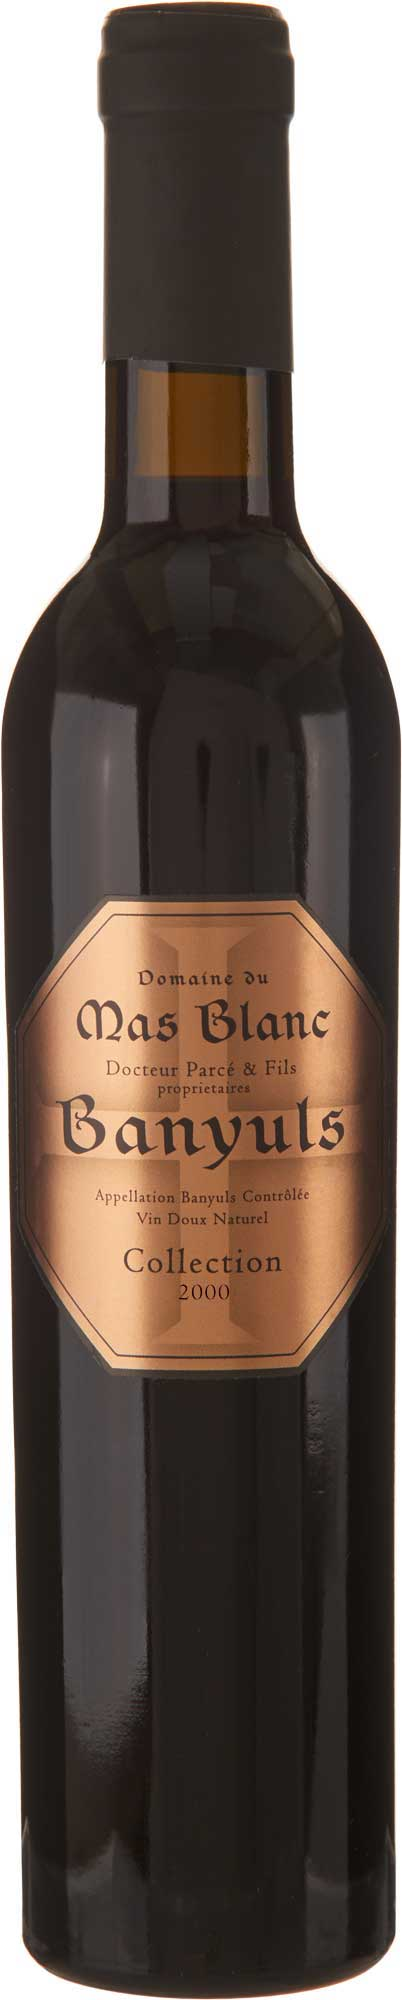 Domaine du Mas Blanc Banyuls 'Collection' 2000